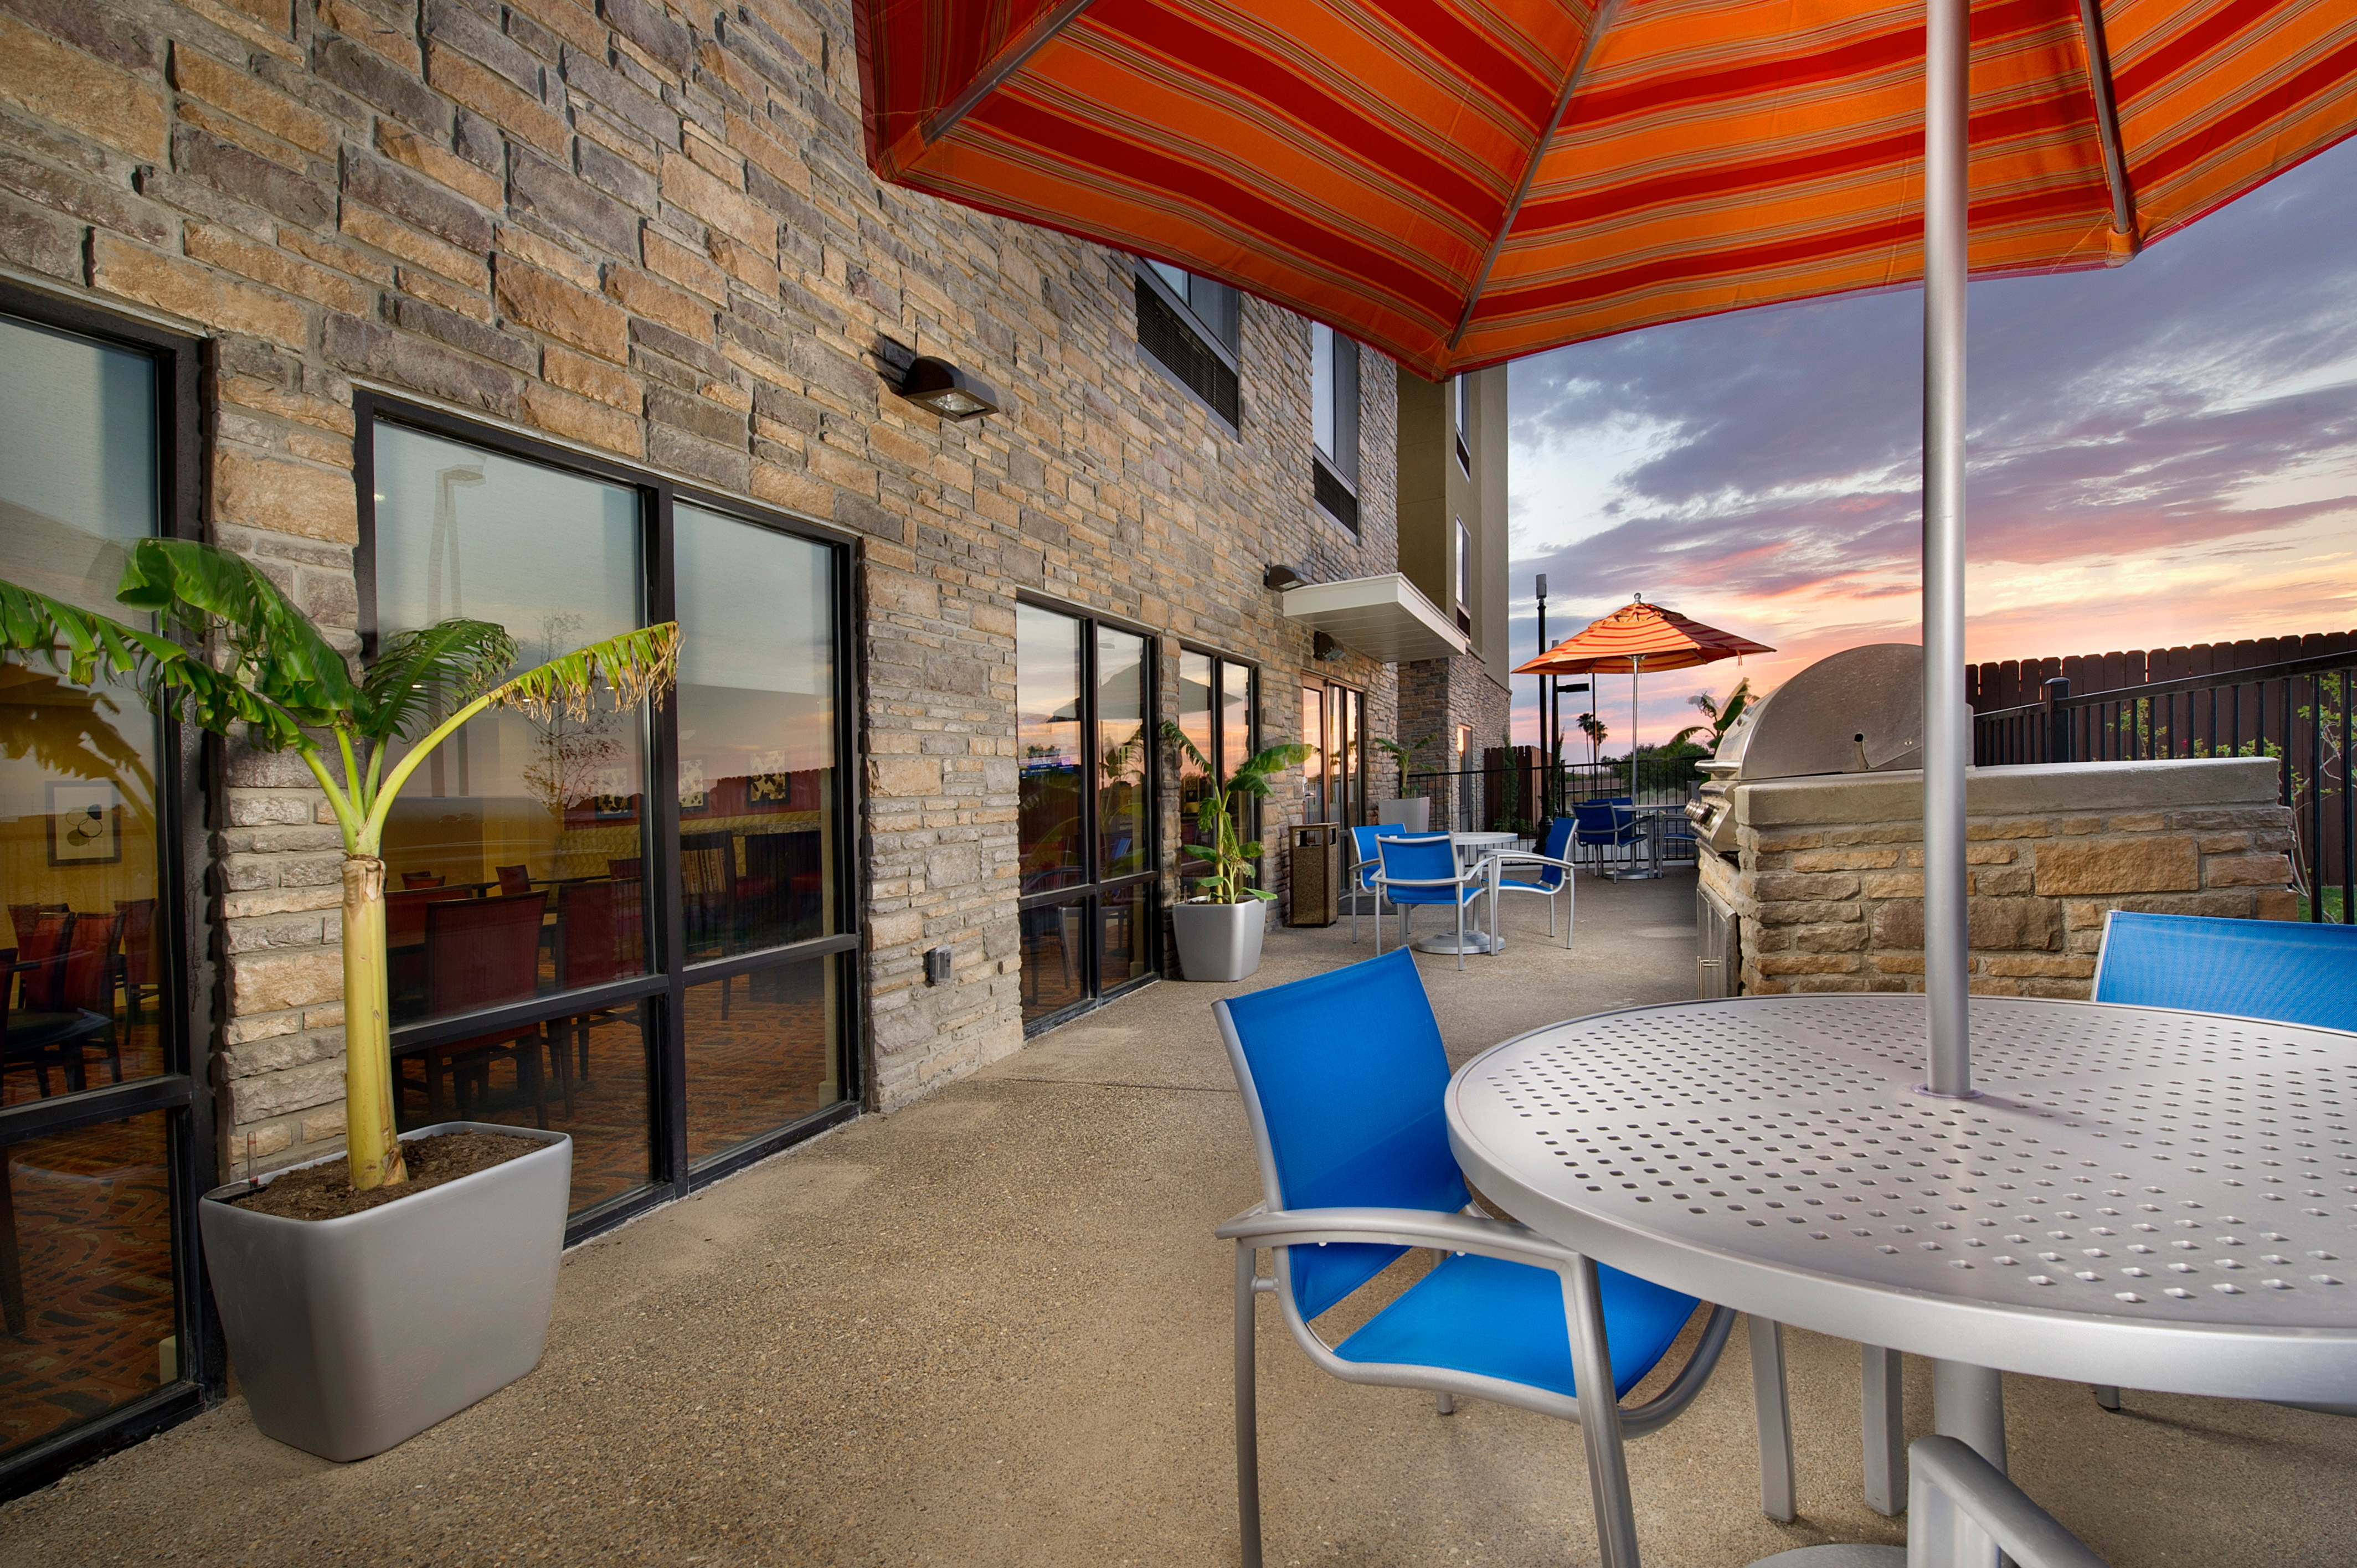 TownePlace Suites by Marriott Eagle Pass image 11